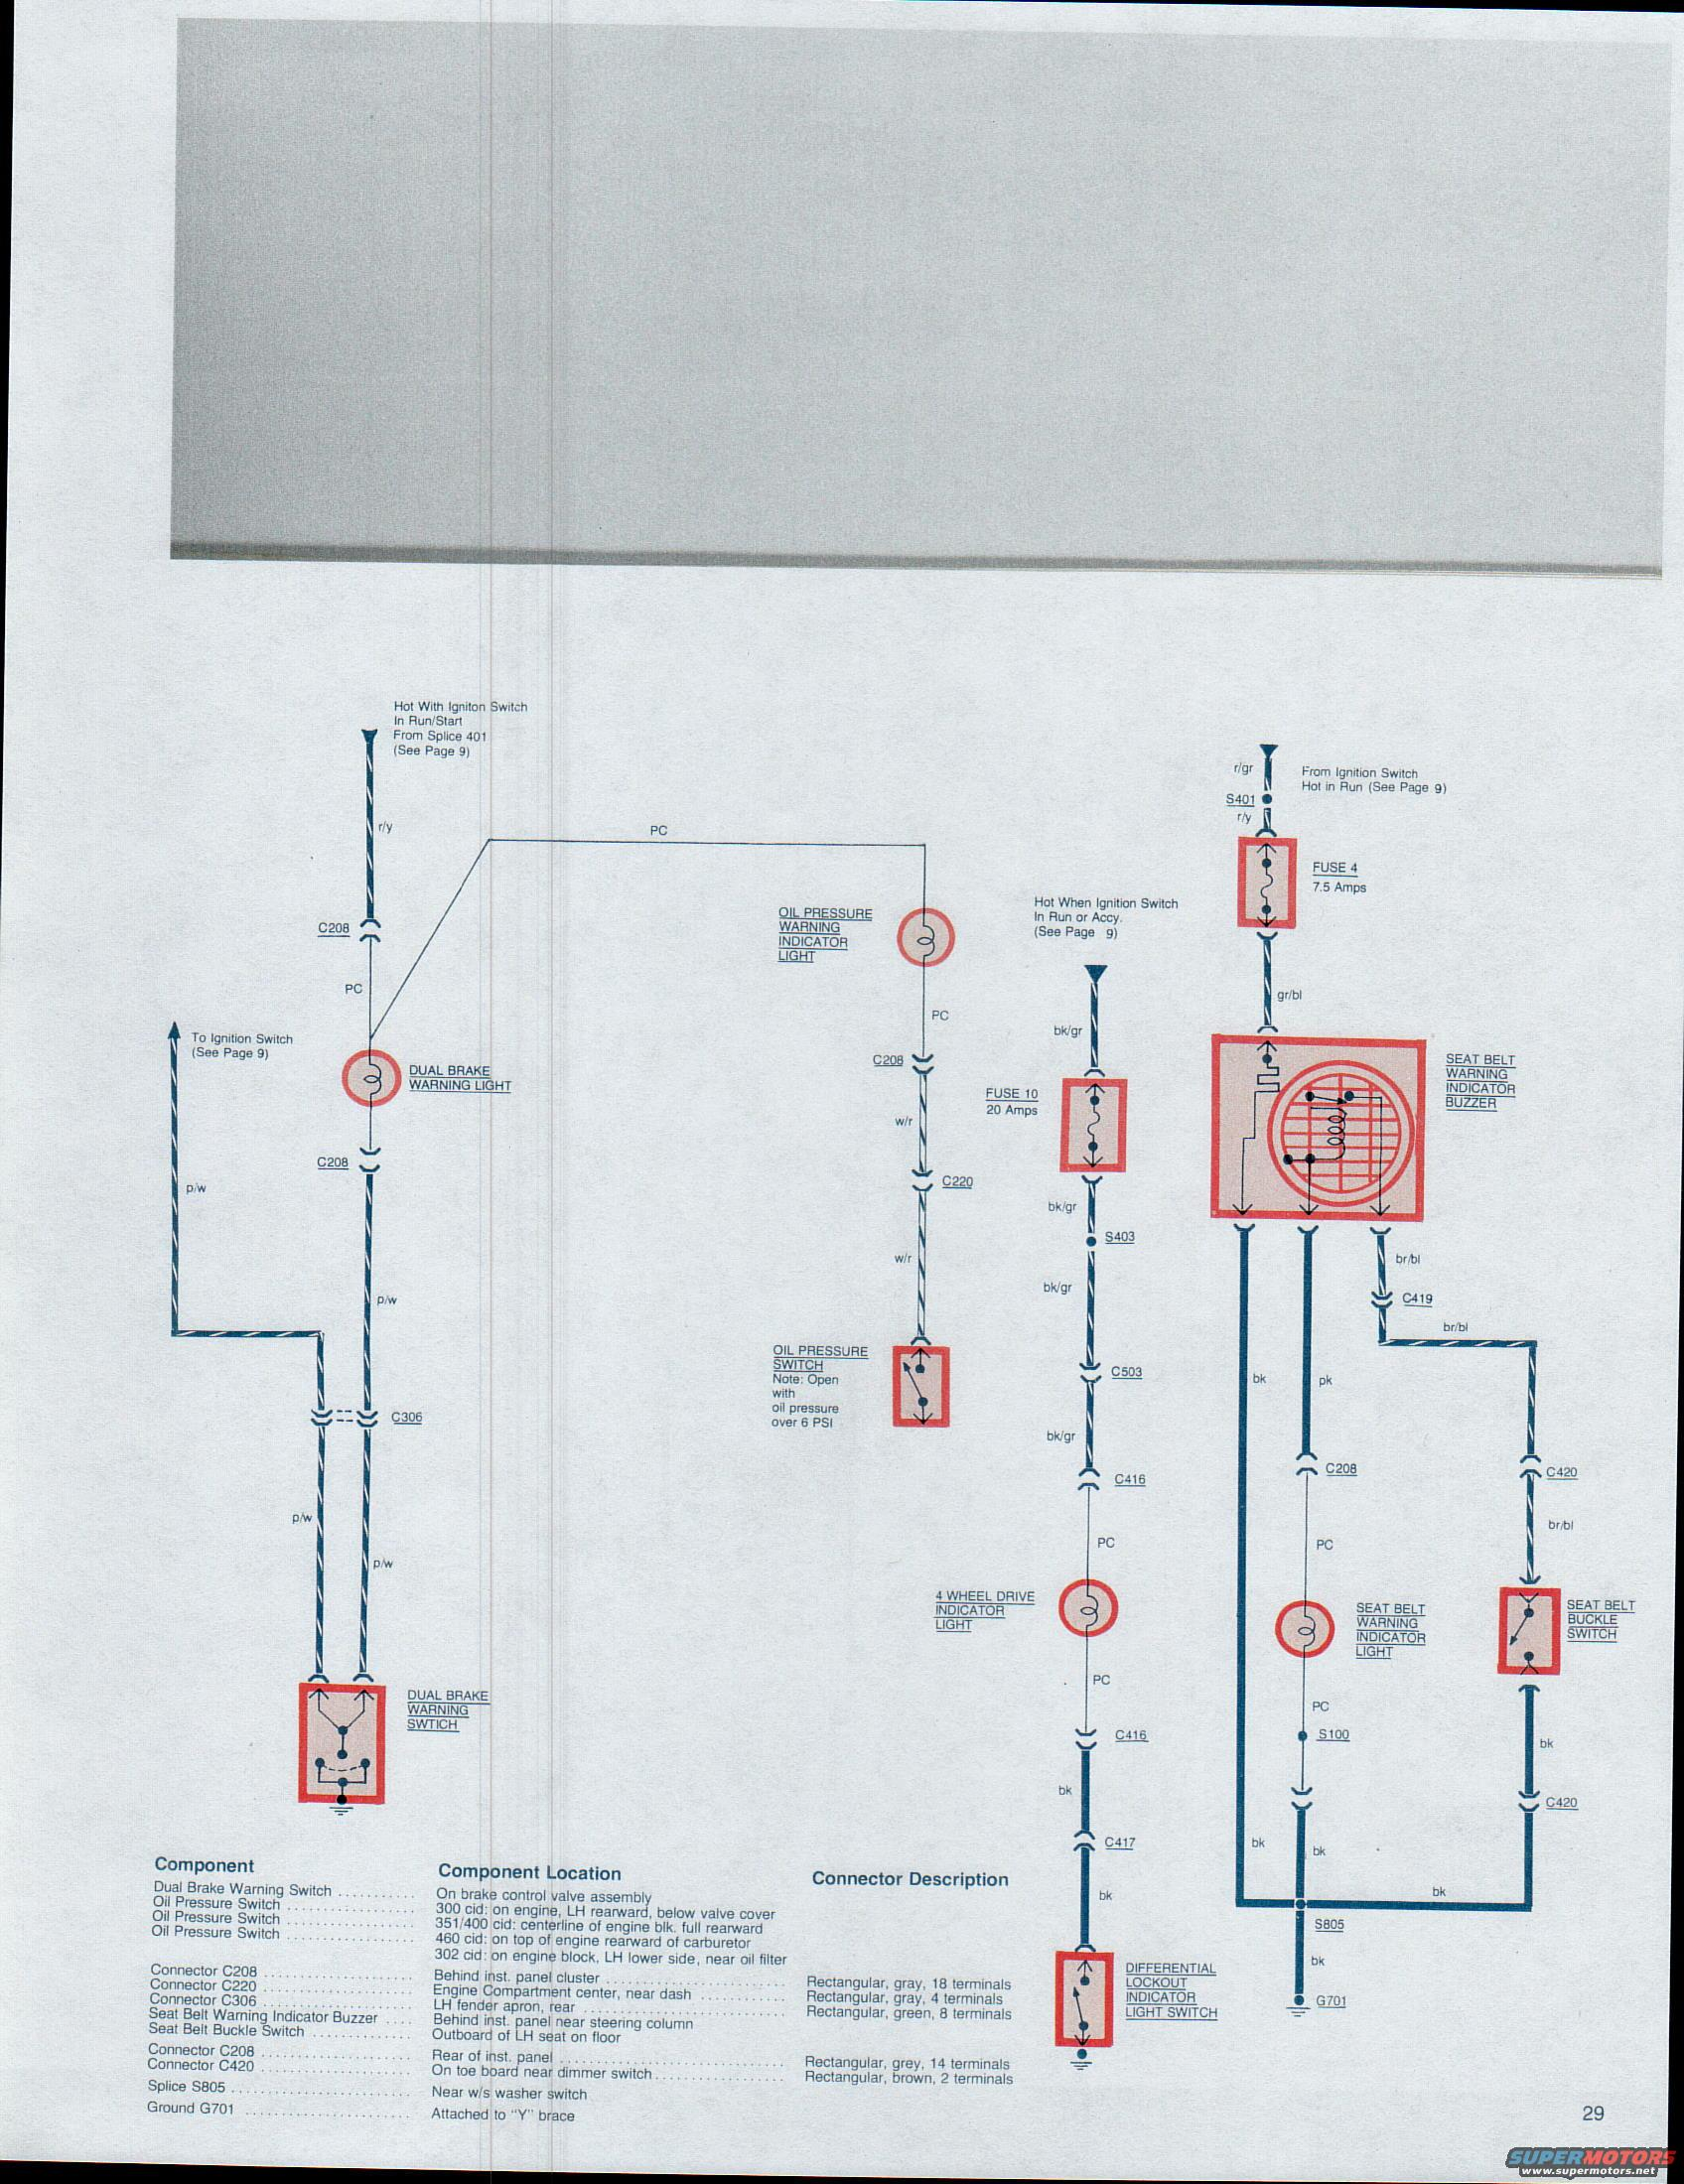 1978 F150 Idiot Brake Light 73 79 Ford Truck F Series Zone 1979 F100 460 Engine Diagram Bronco Through F350 Page 29jp